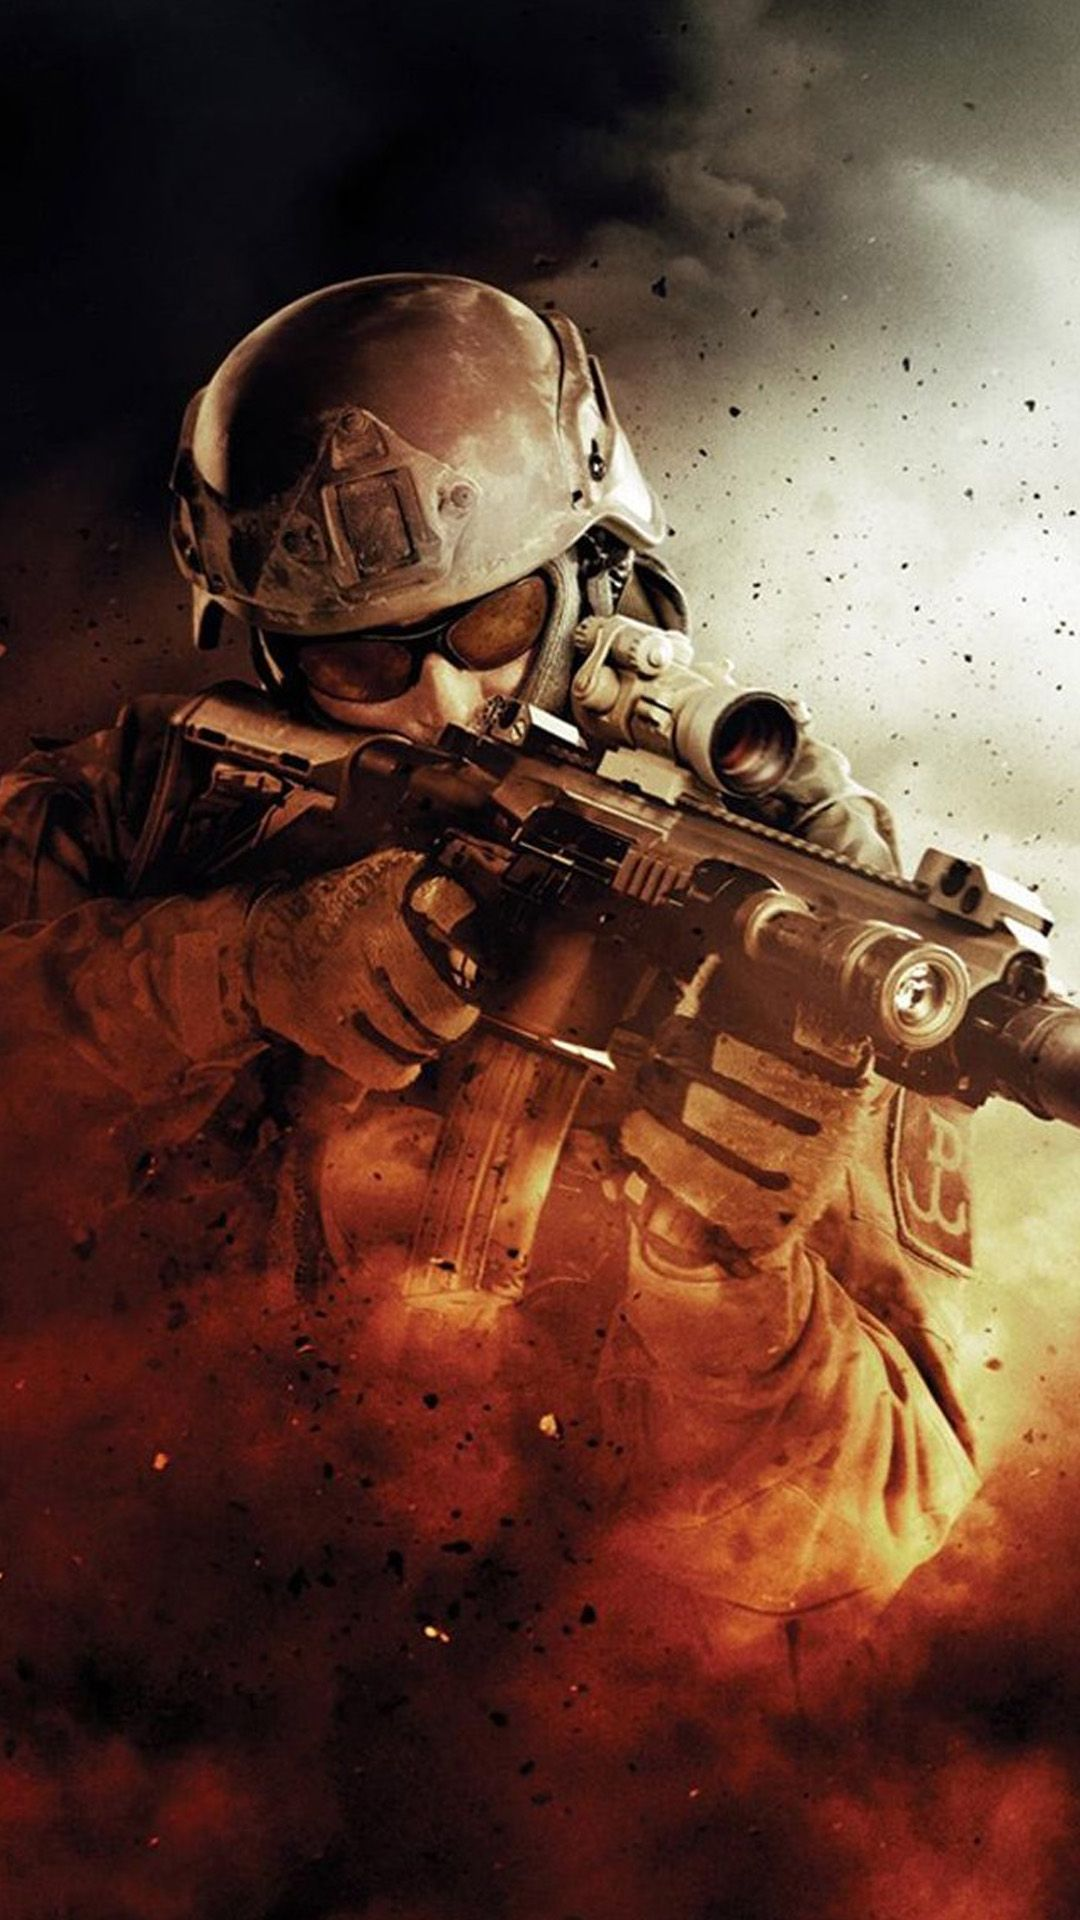 War Fire Fight Soldier Gun Weapon IPhone 6 Plus Wallpaper